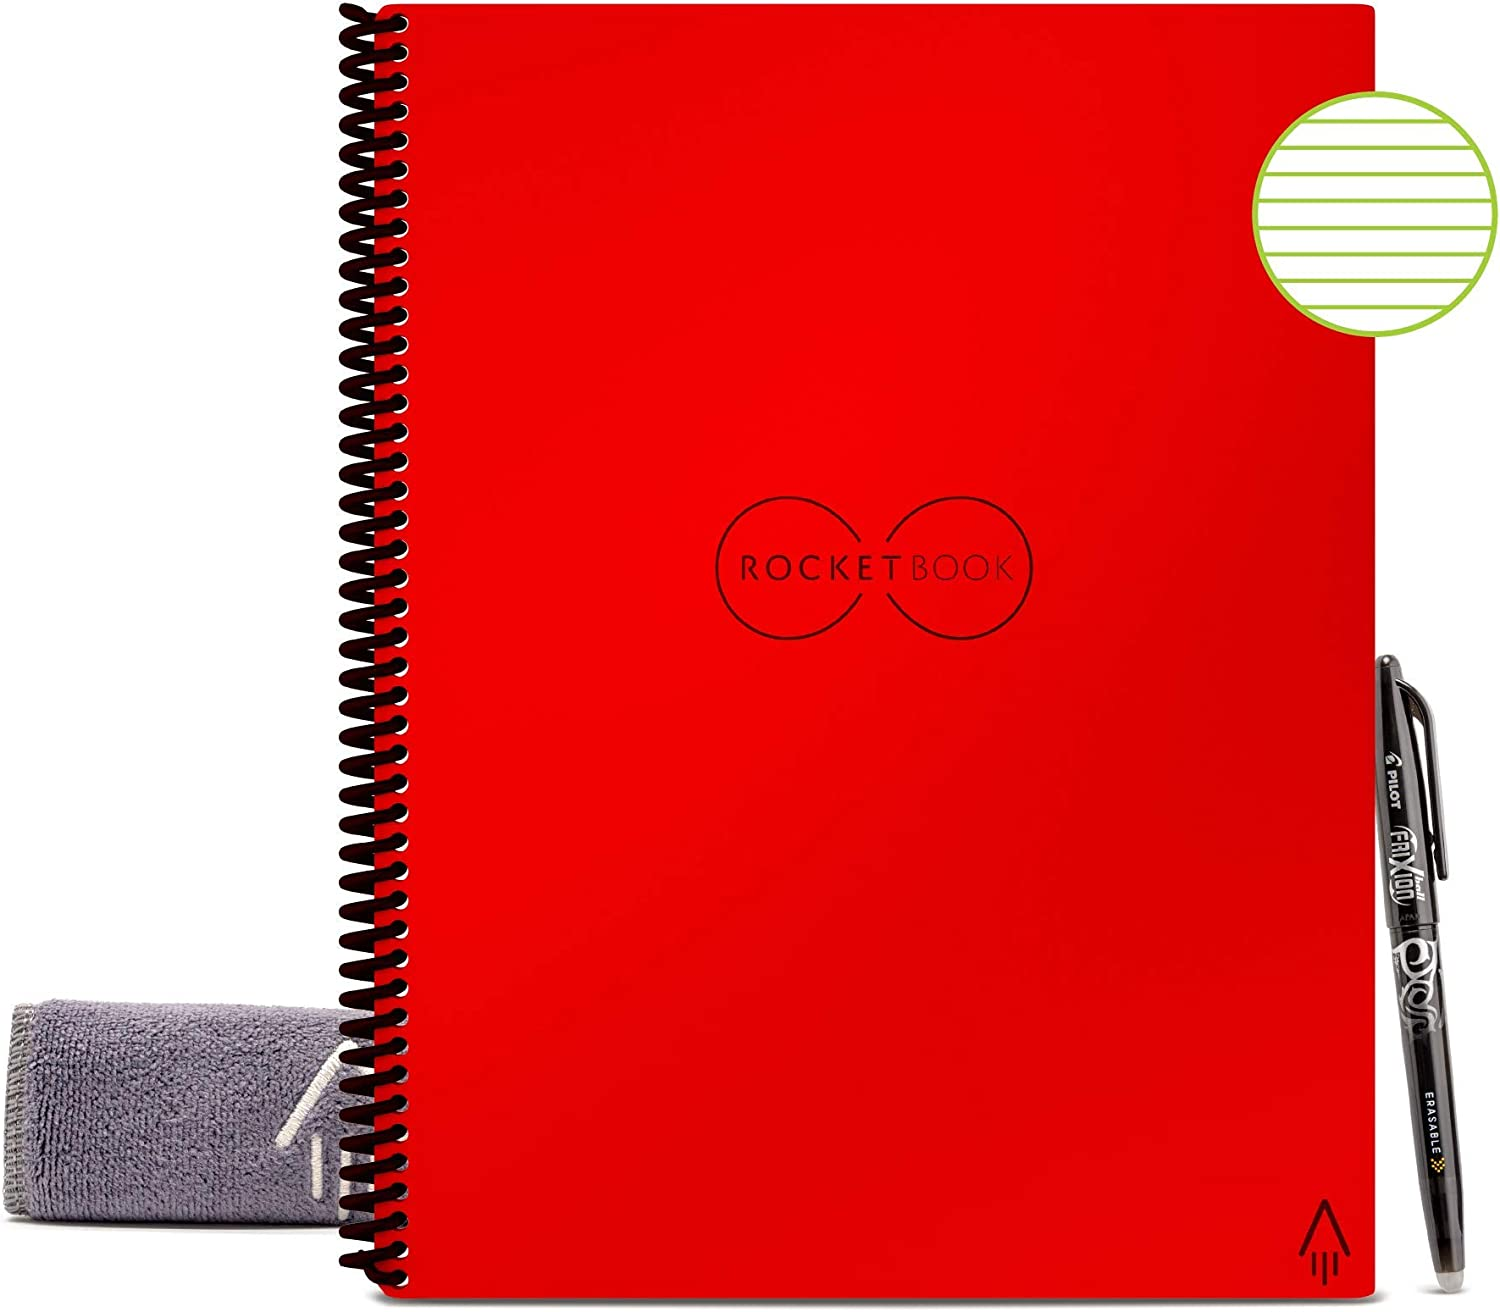 """Rocketbook Smart Reusable Notebook - Lined Eco-Friendly Notebook with 1 Pilot Frixion Pen & 1 Microfiber Cloth Included - Atomic Red Cover, Letter Size (8.5"""" x 11"""")"""